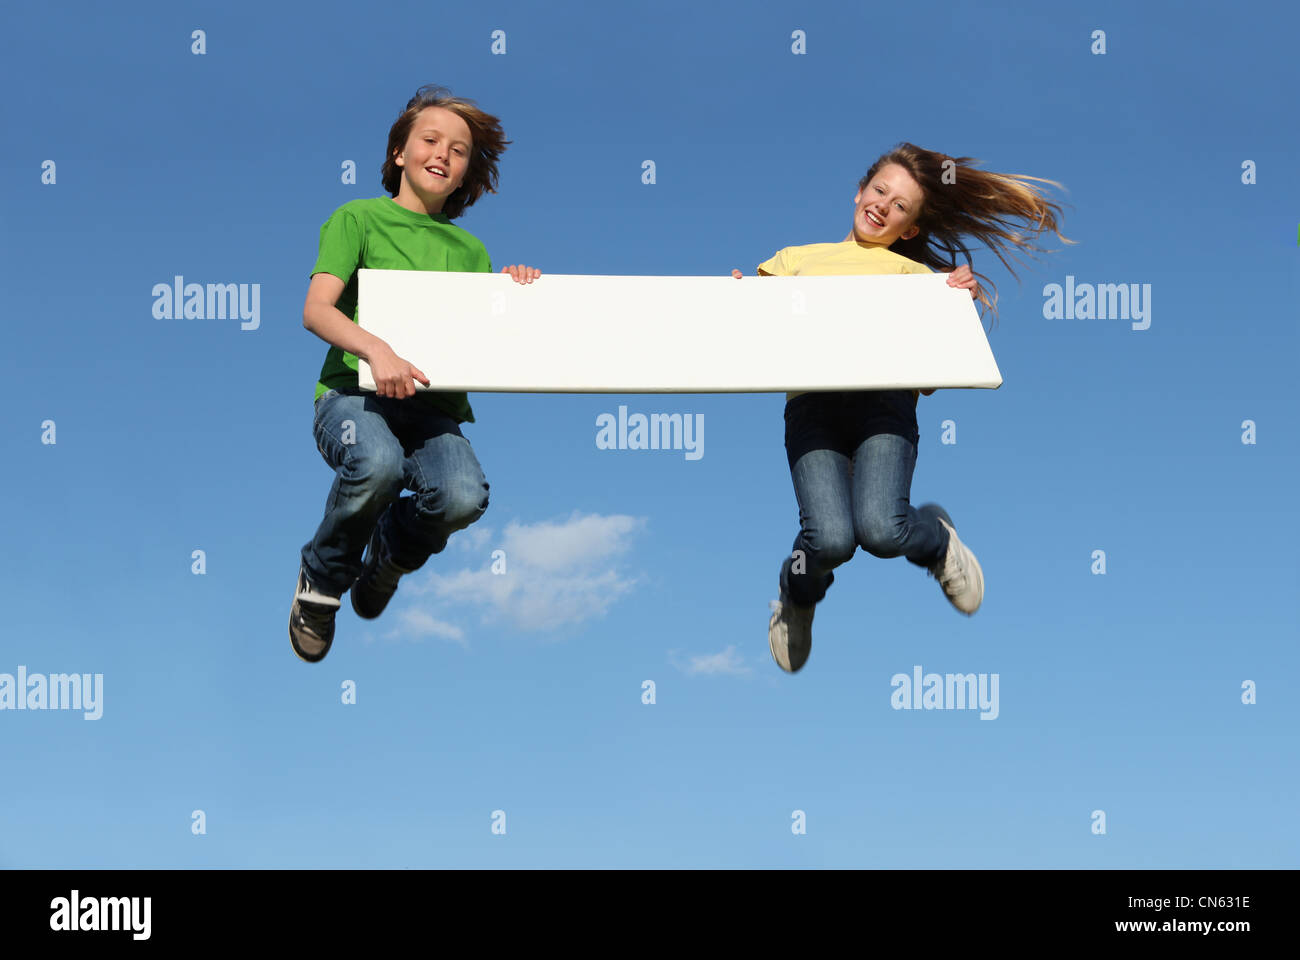 kids jumping holding blank sign - Stock Image